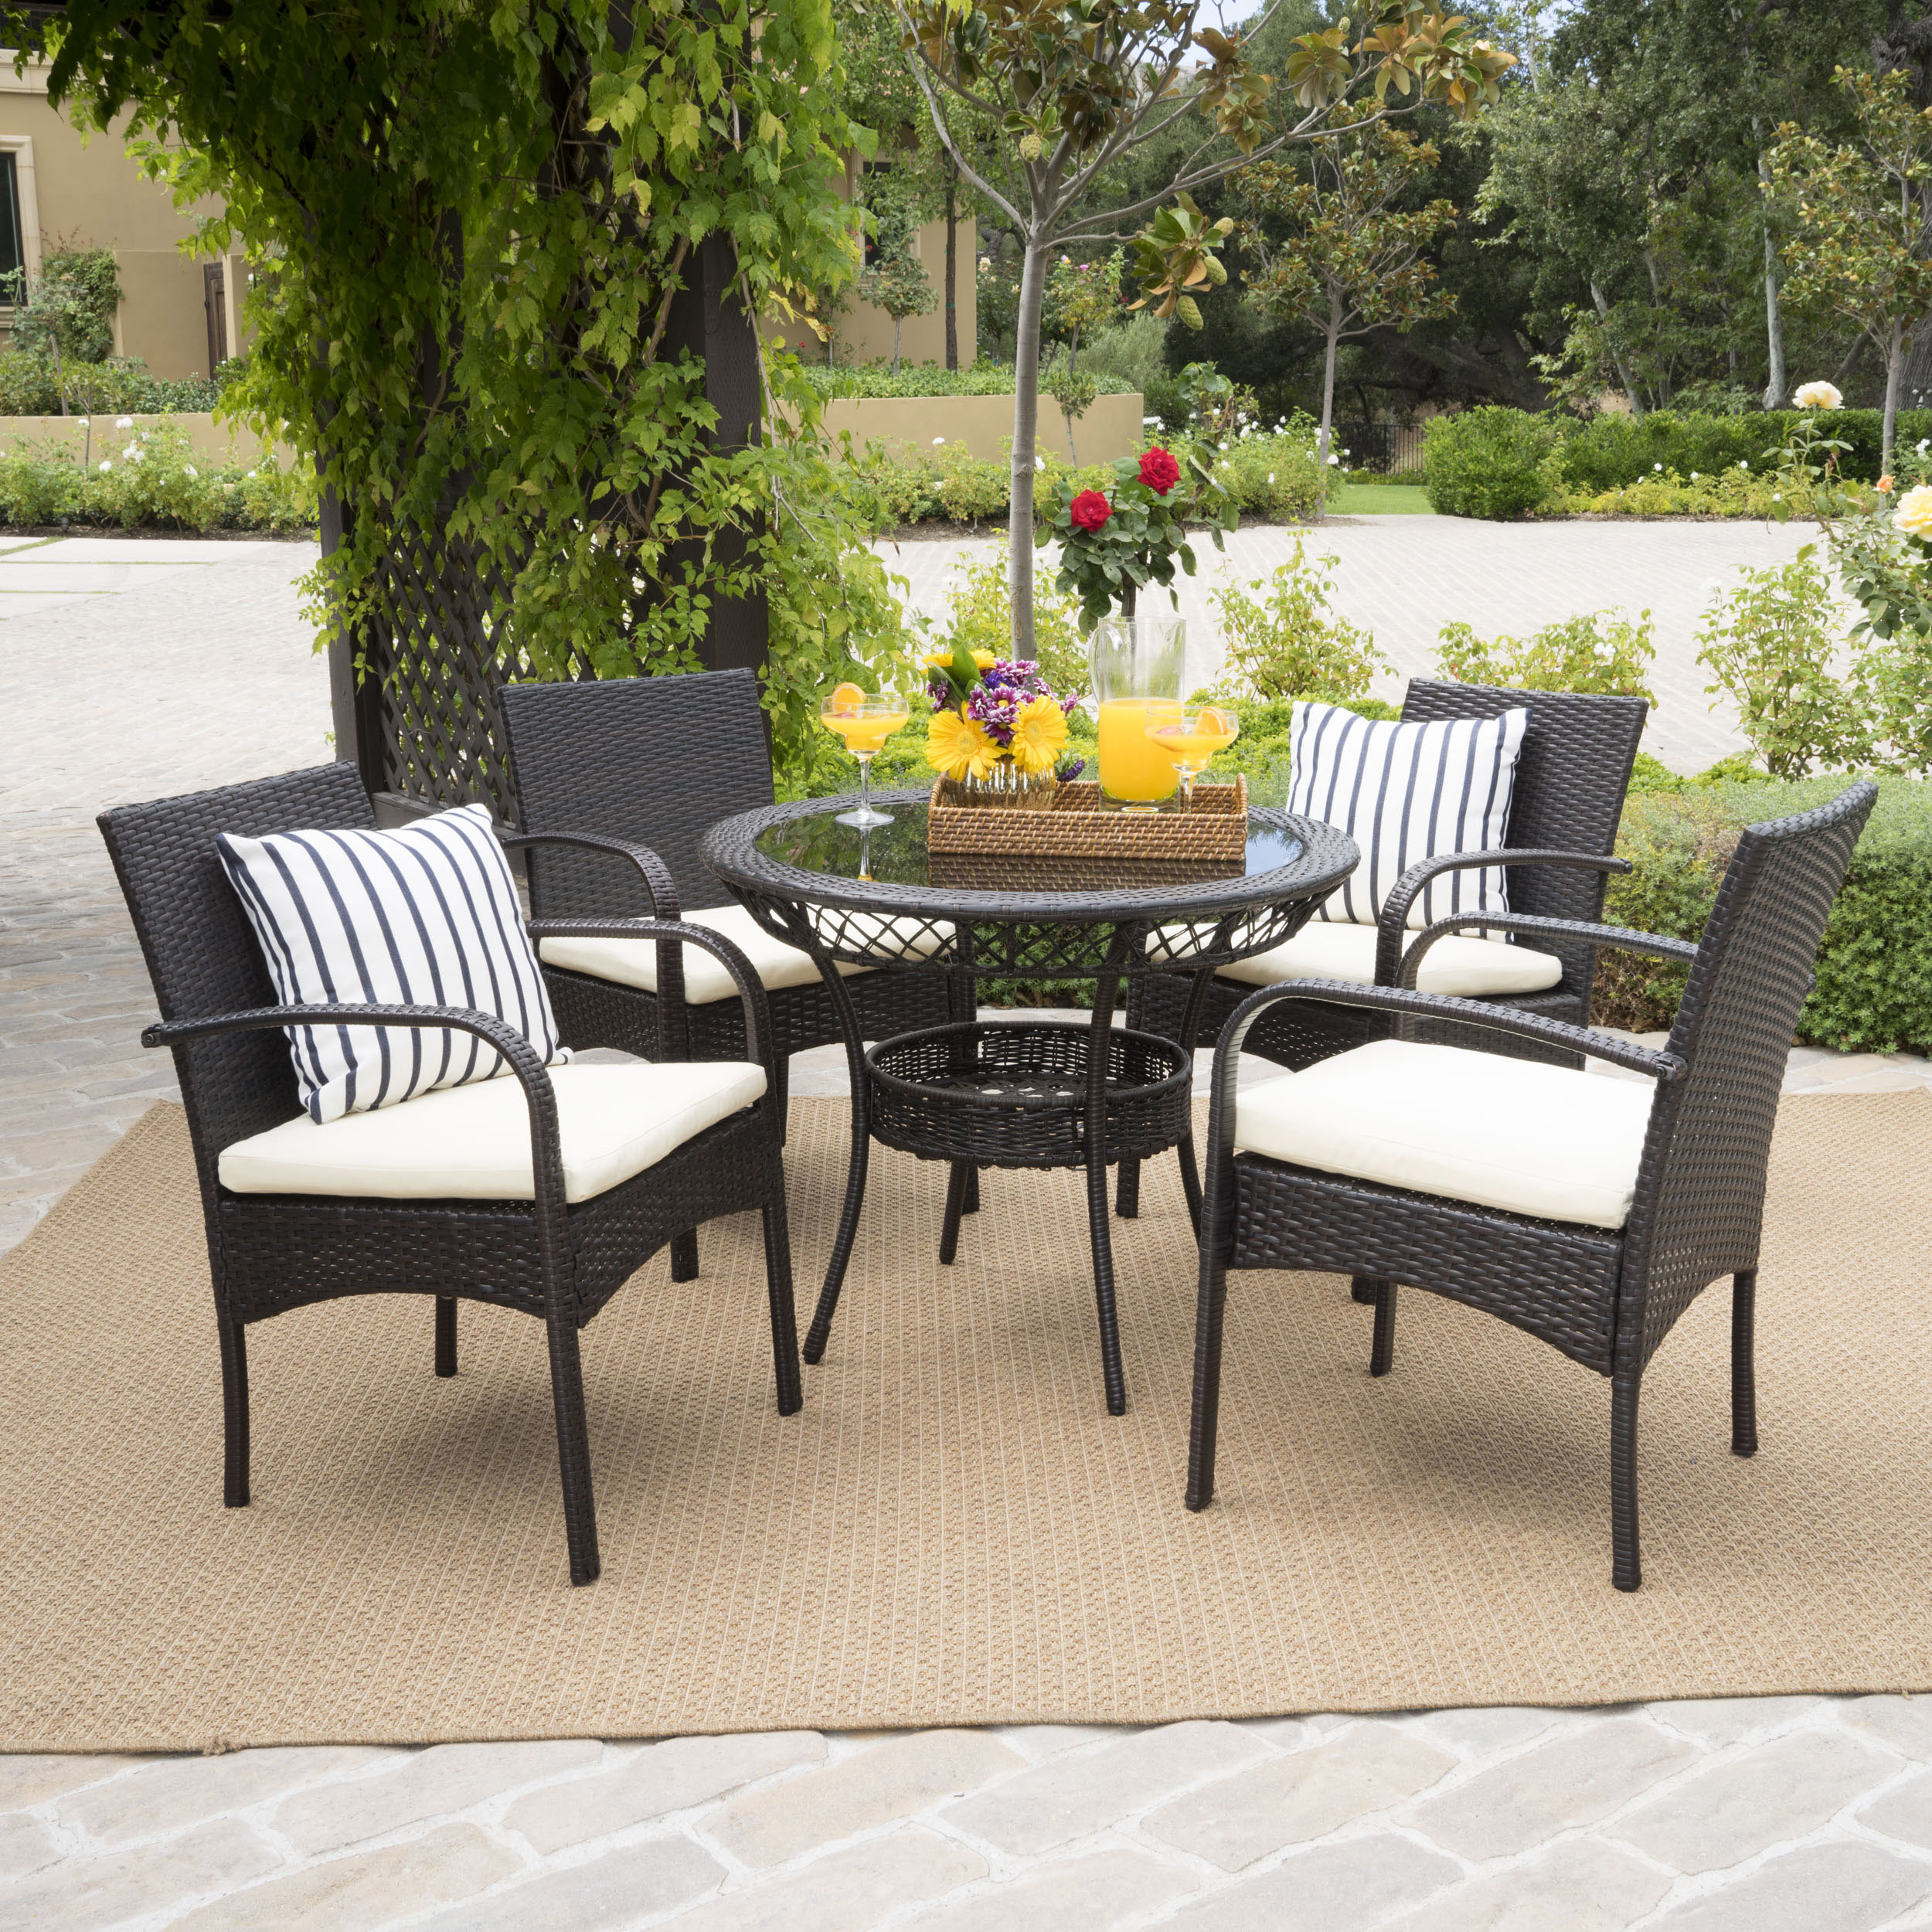 Venetian 5 Piece Outdoor Round Glass Top Wicker Dining Set with Cushions, Multibrown